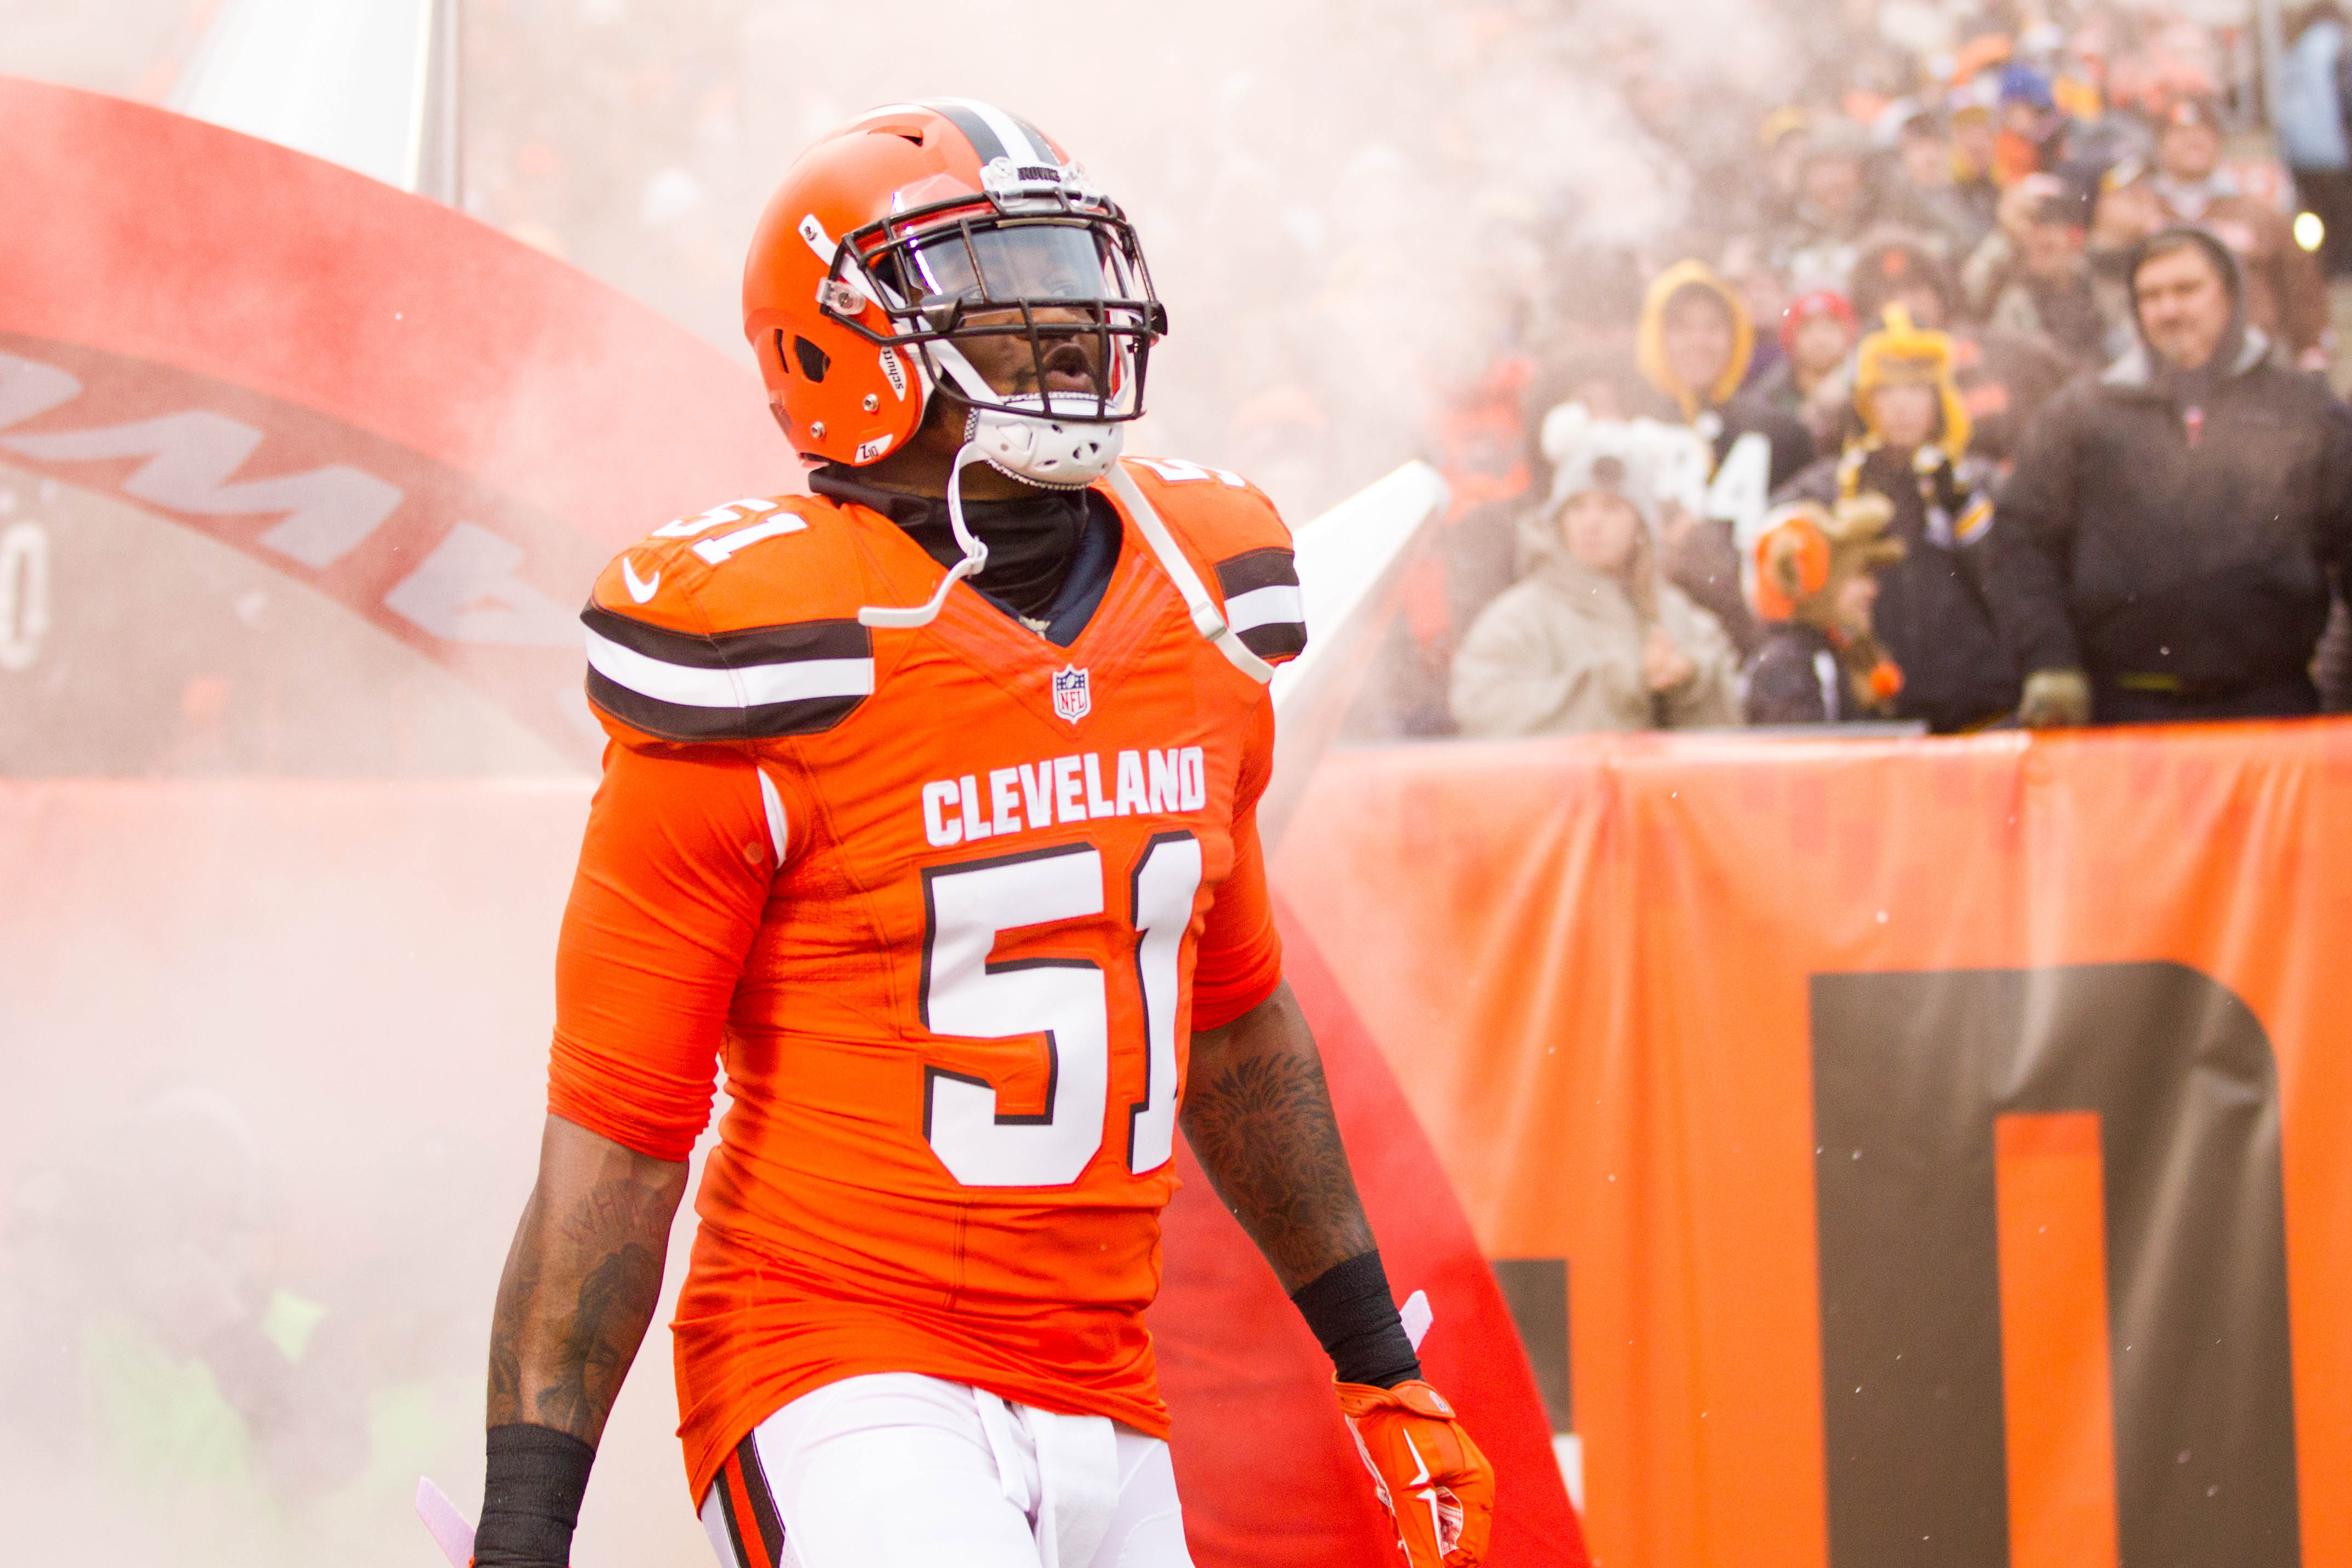 9735699-nfl-pittsburgh-steelers-at-cleveland-browns-3